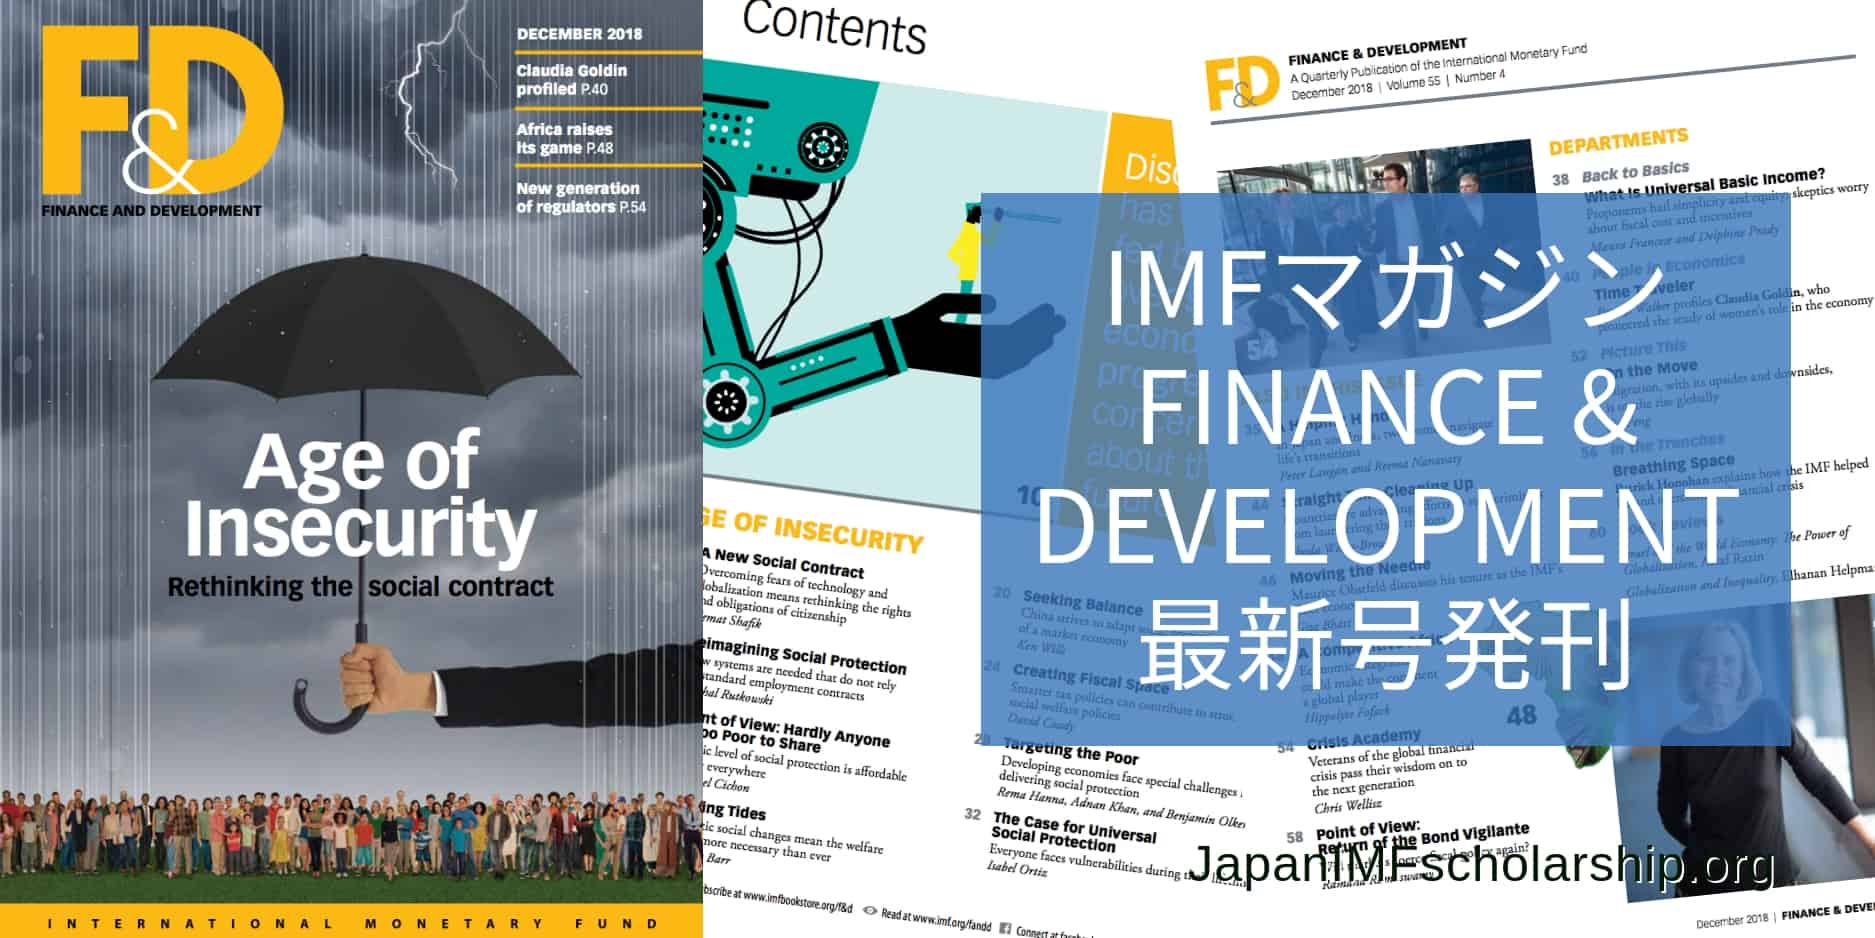 jisp imf magazine finance and development 2018-12